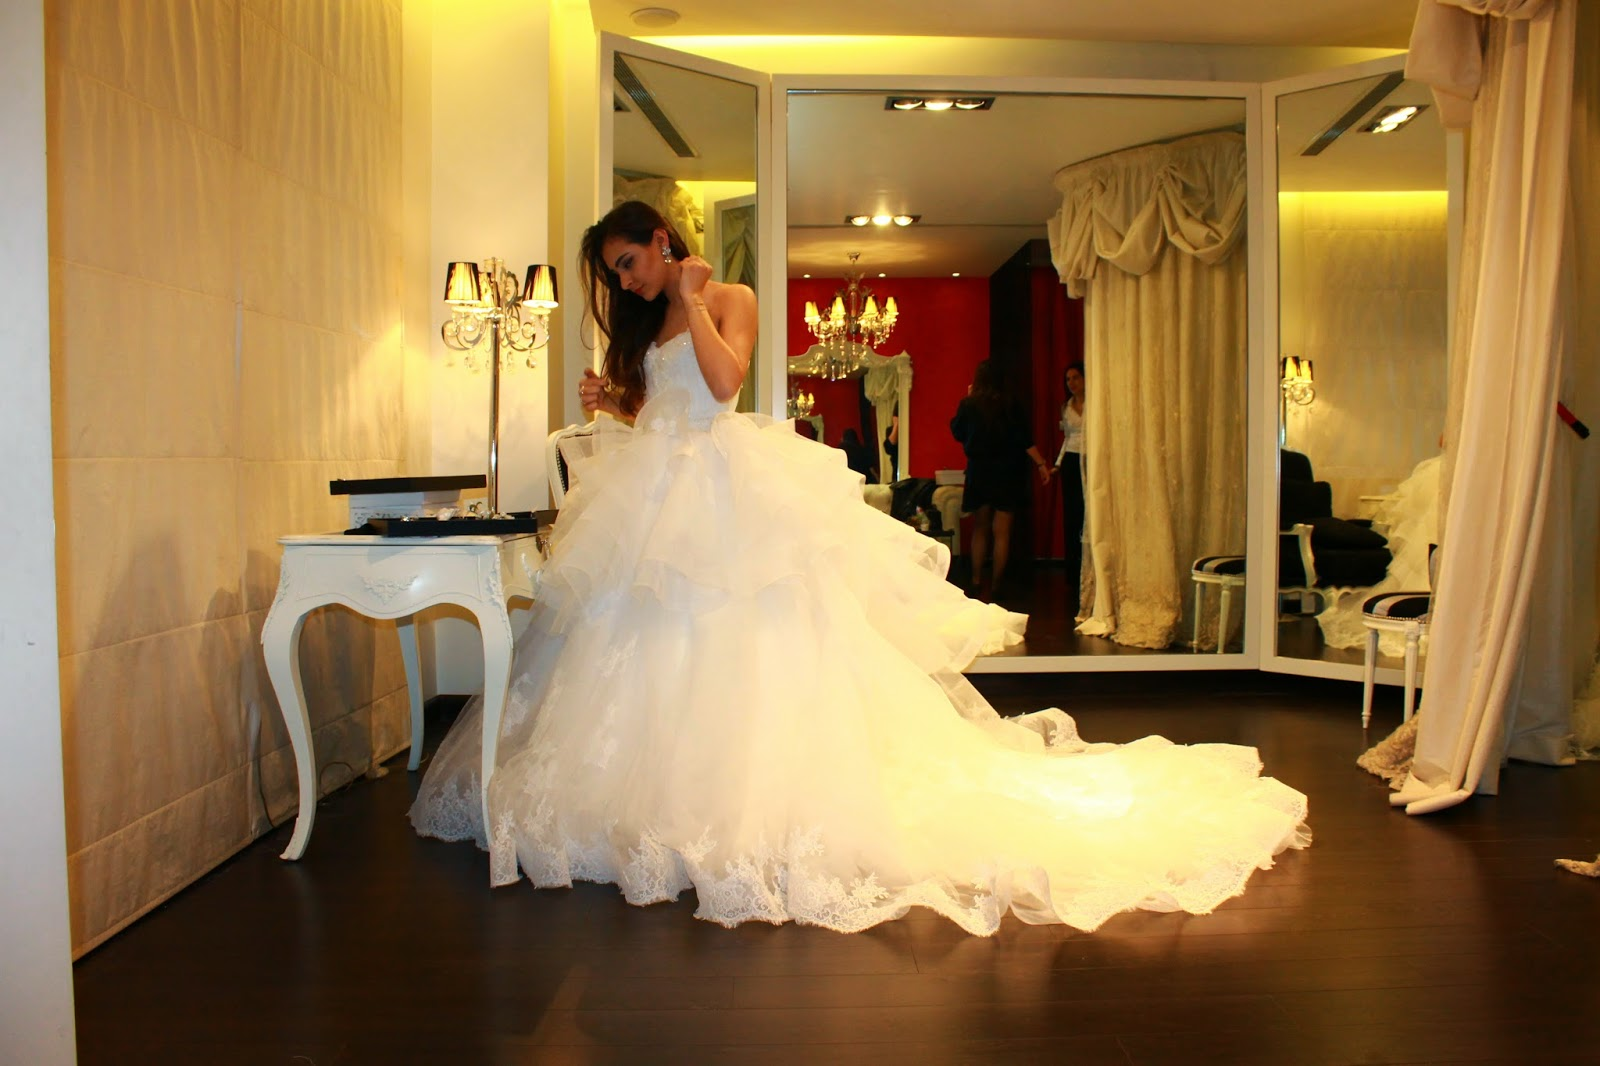 It Has A Less Poised And More Electrifying Attitude However The Wedding Dress Is Always As Elegant Price For This Ranges Between 8000